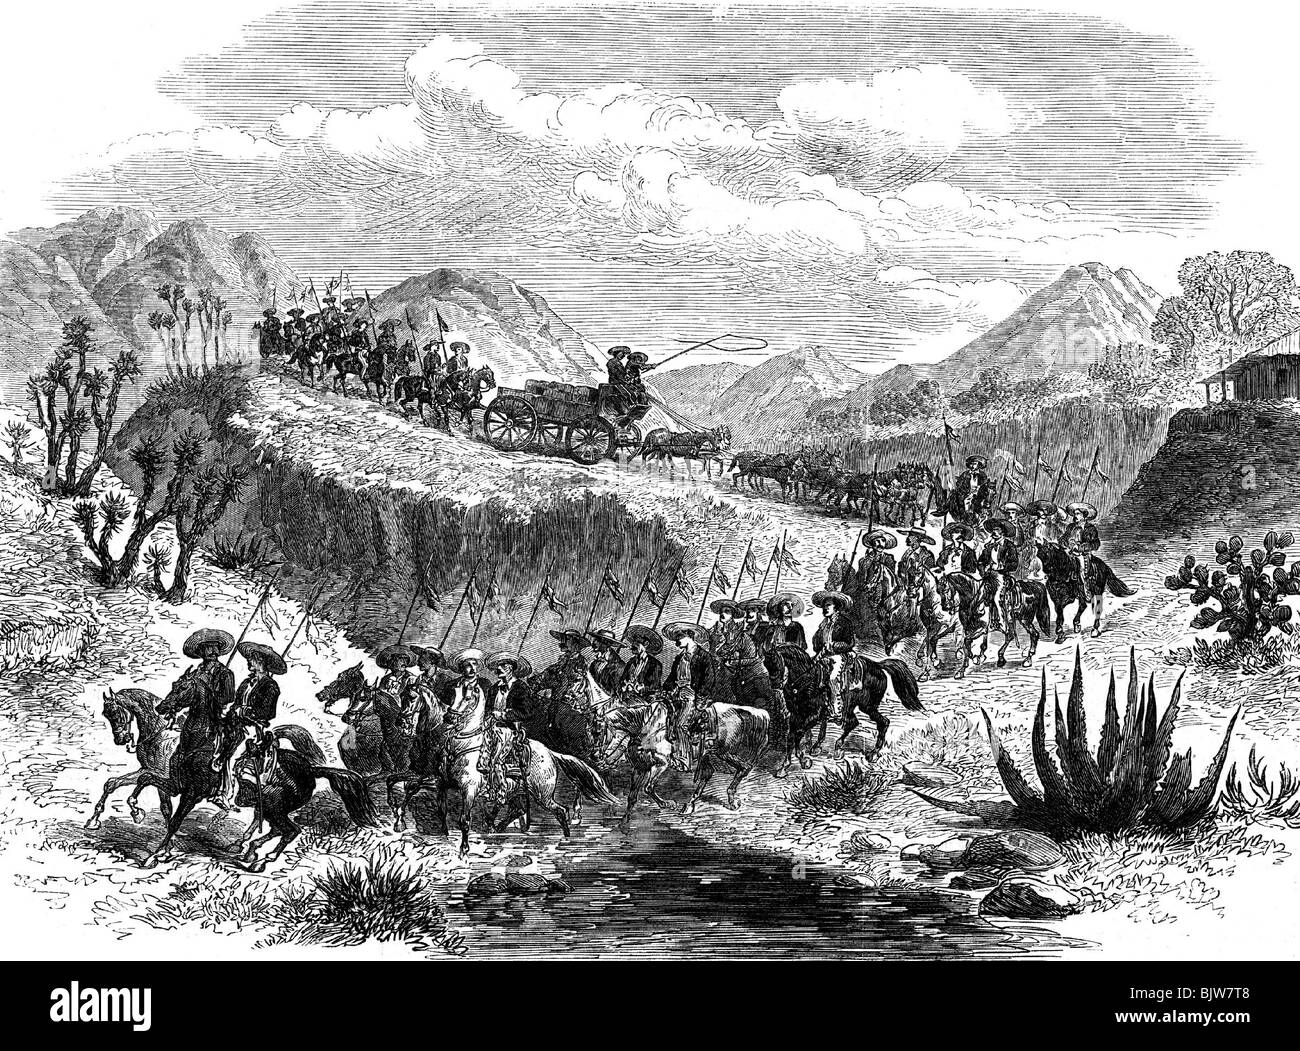 metals, silver, transport, soldiers escorting silver transport, wood engraving, Mexico, 19th century, historic, - Stock Image